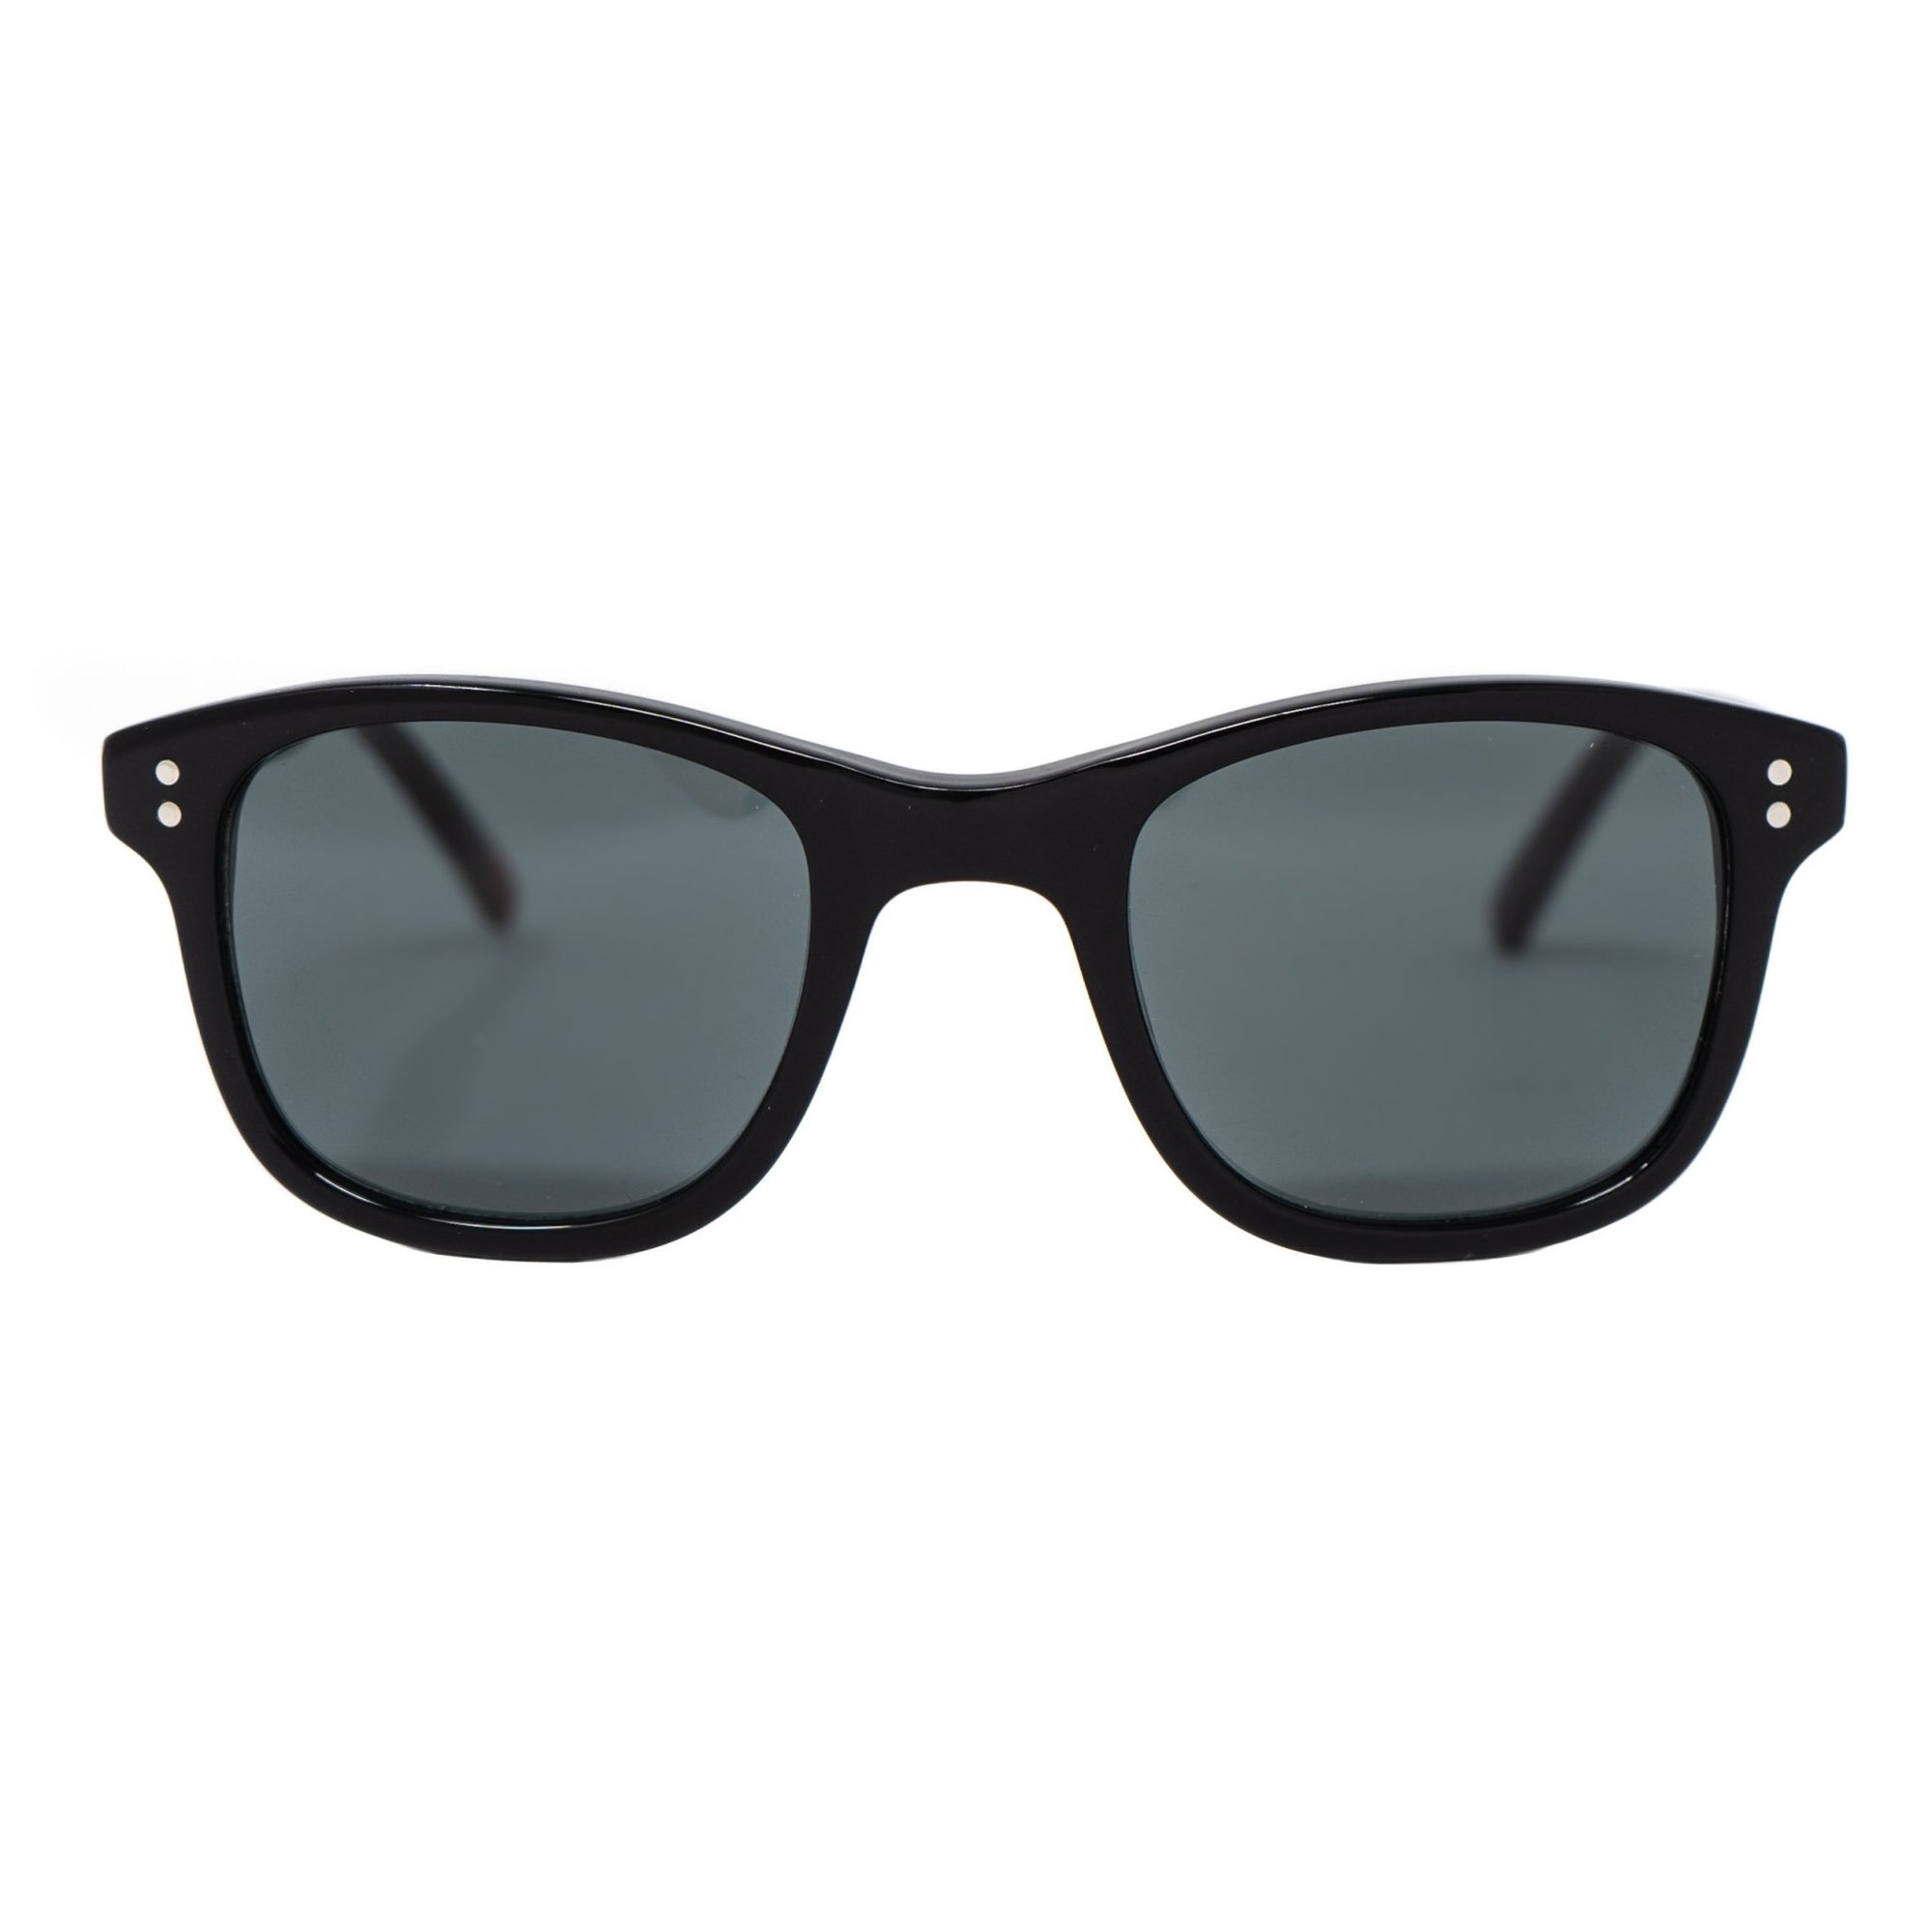 Oliver Spencer Sunglasses Unisex Wayfarer Black with Grey CAT3 Lenses - OS2C2SUN - Watches & Crystals